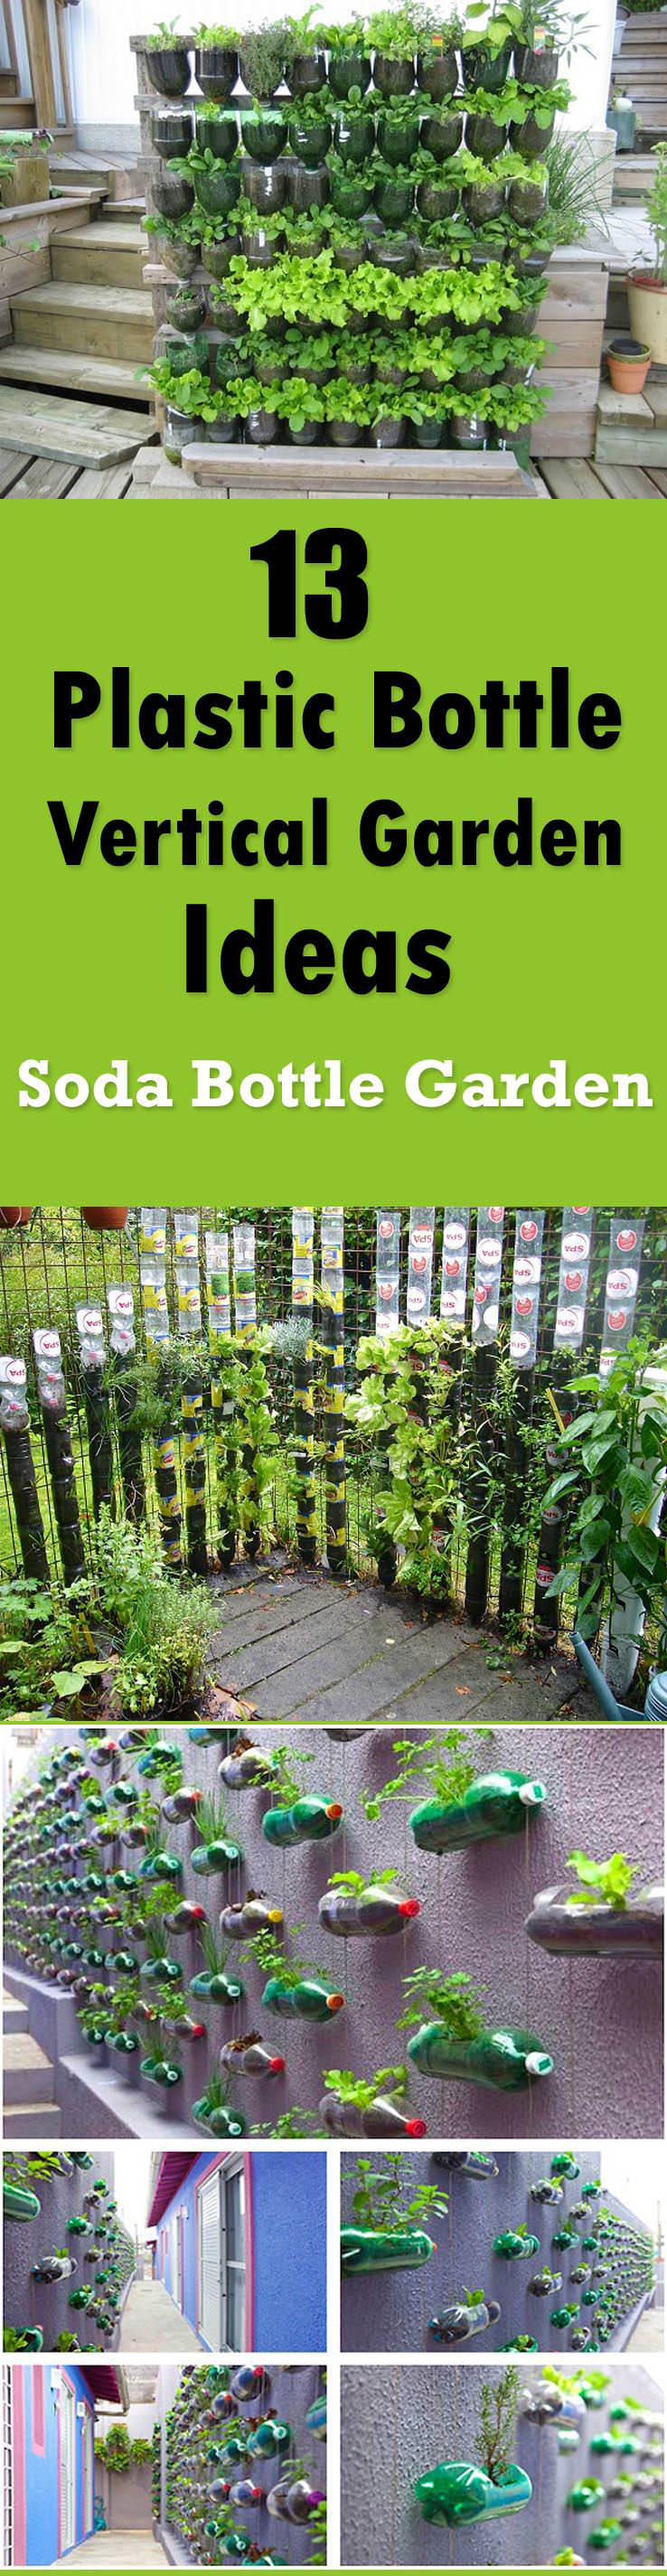 Vertical Garden Design Ideas plastic bottle verticle garden ideas